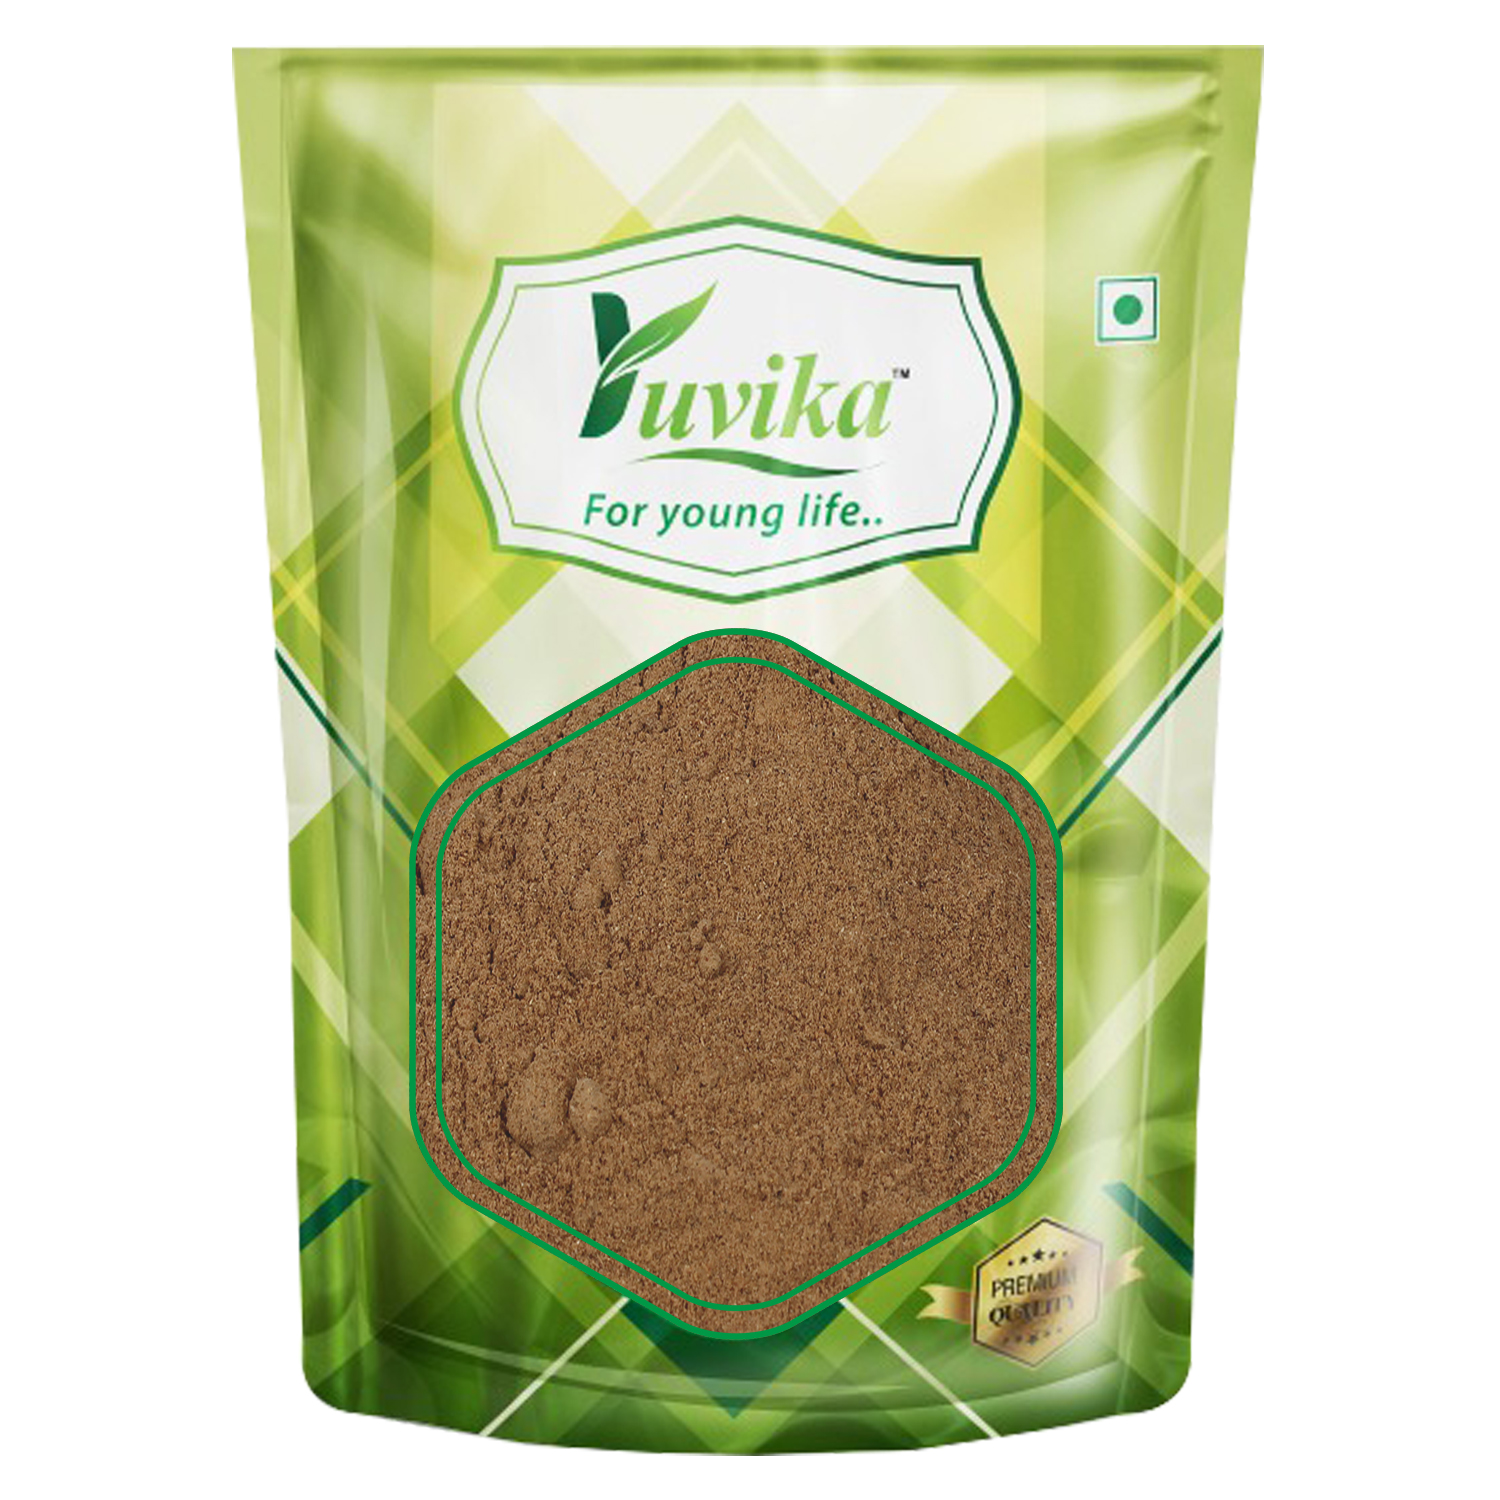 YUVIKA Shikakai Powder - Acacia Concinna - Soap Pod Powder